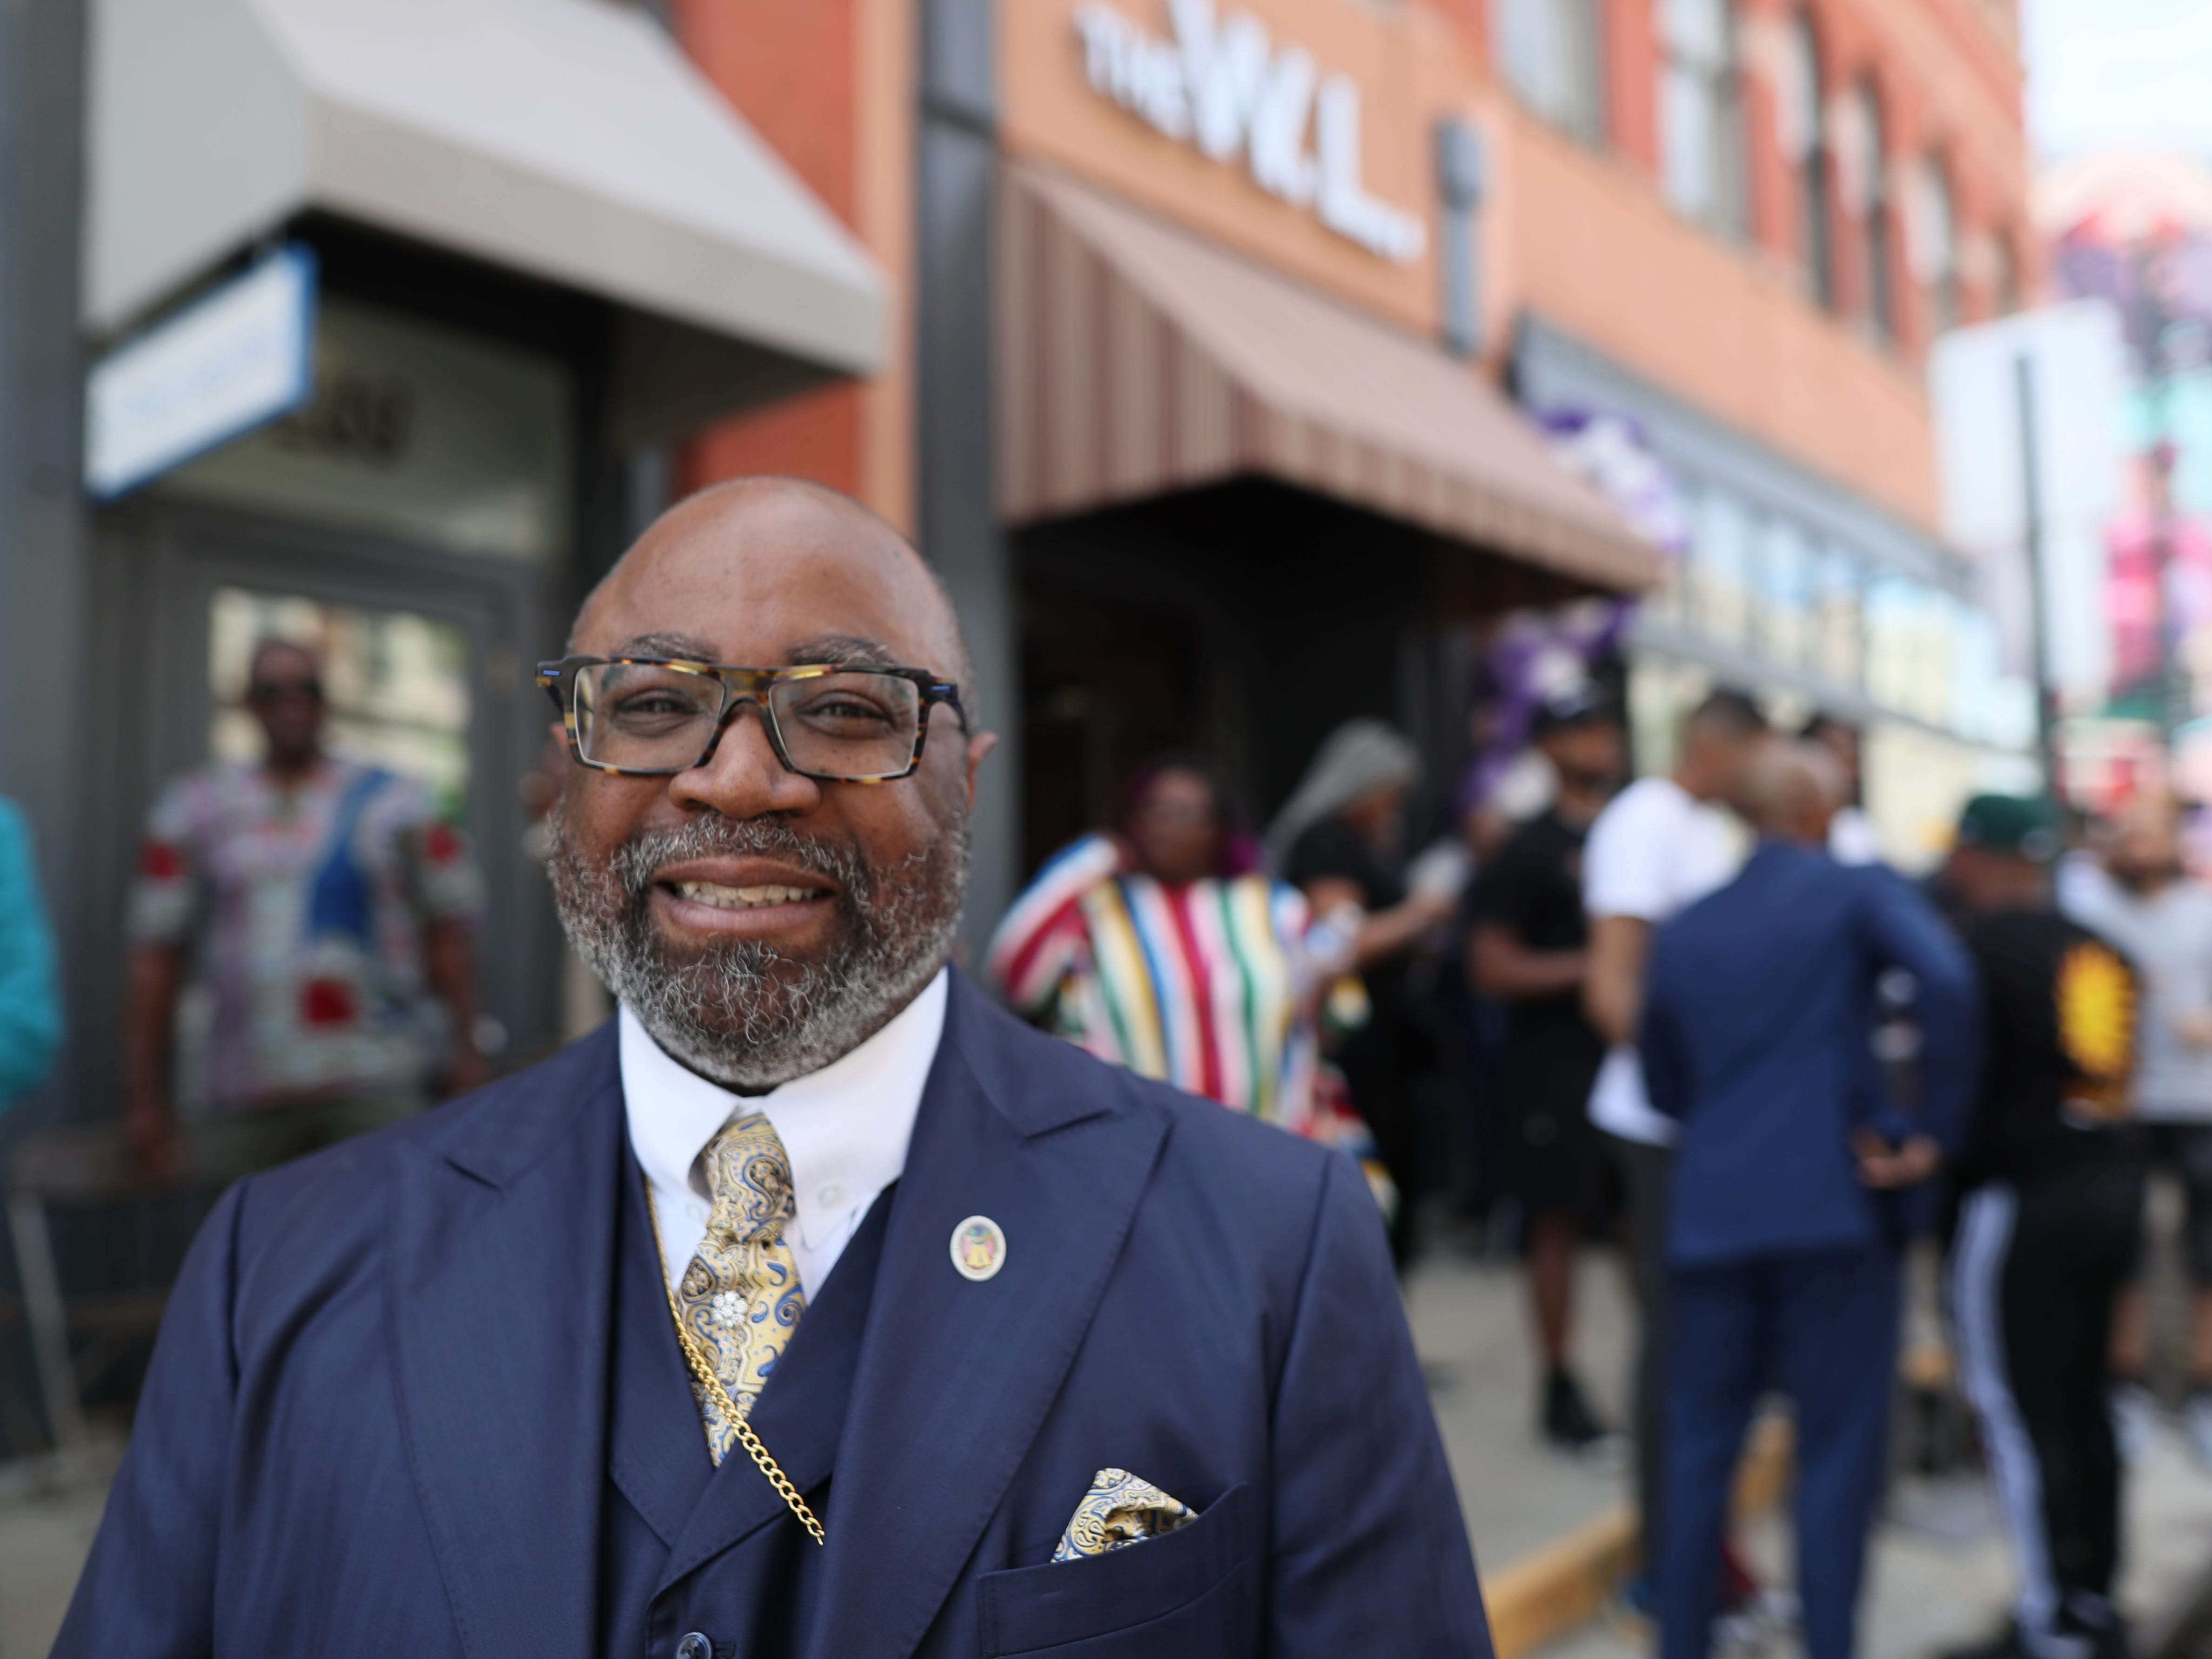 Bishop Brandon Porter stands along South Main Street downtown where the the Adler Building is renamed 'The W.L.' in honor of his late father, Bishop W.L. Porter, on Wednesday, April 10, 2019.